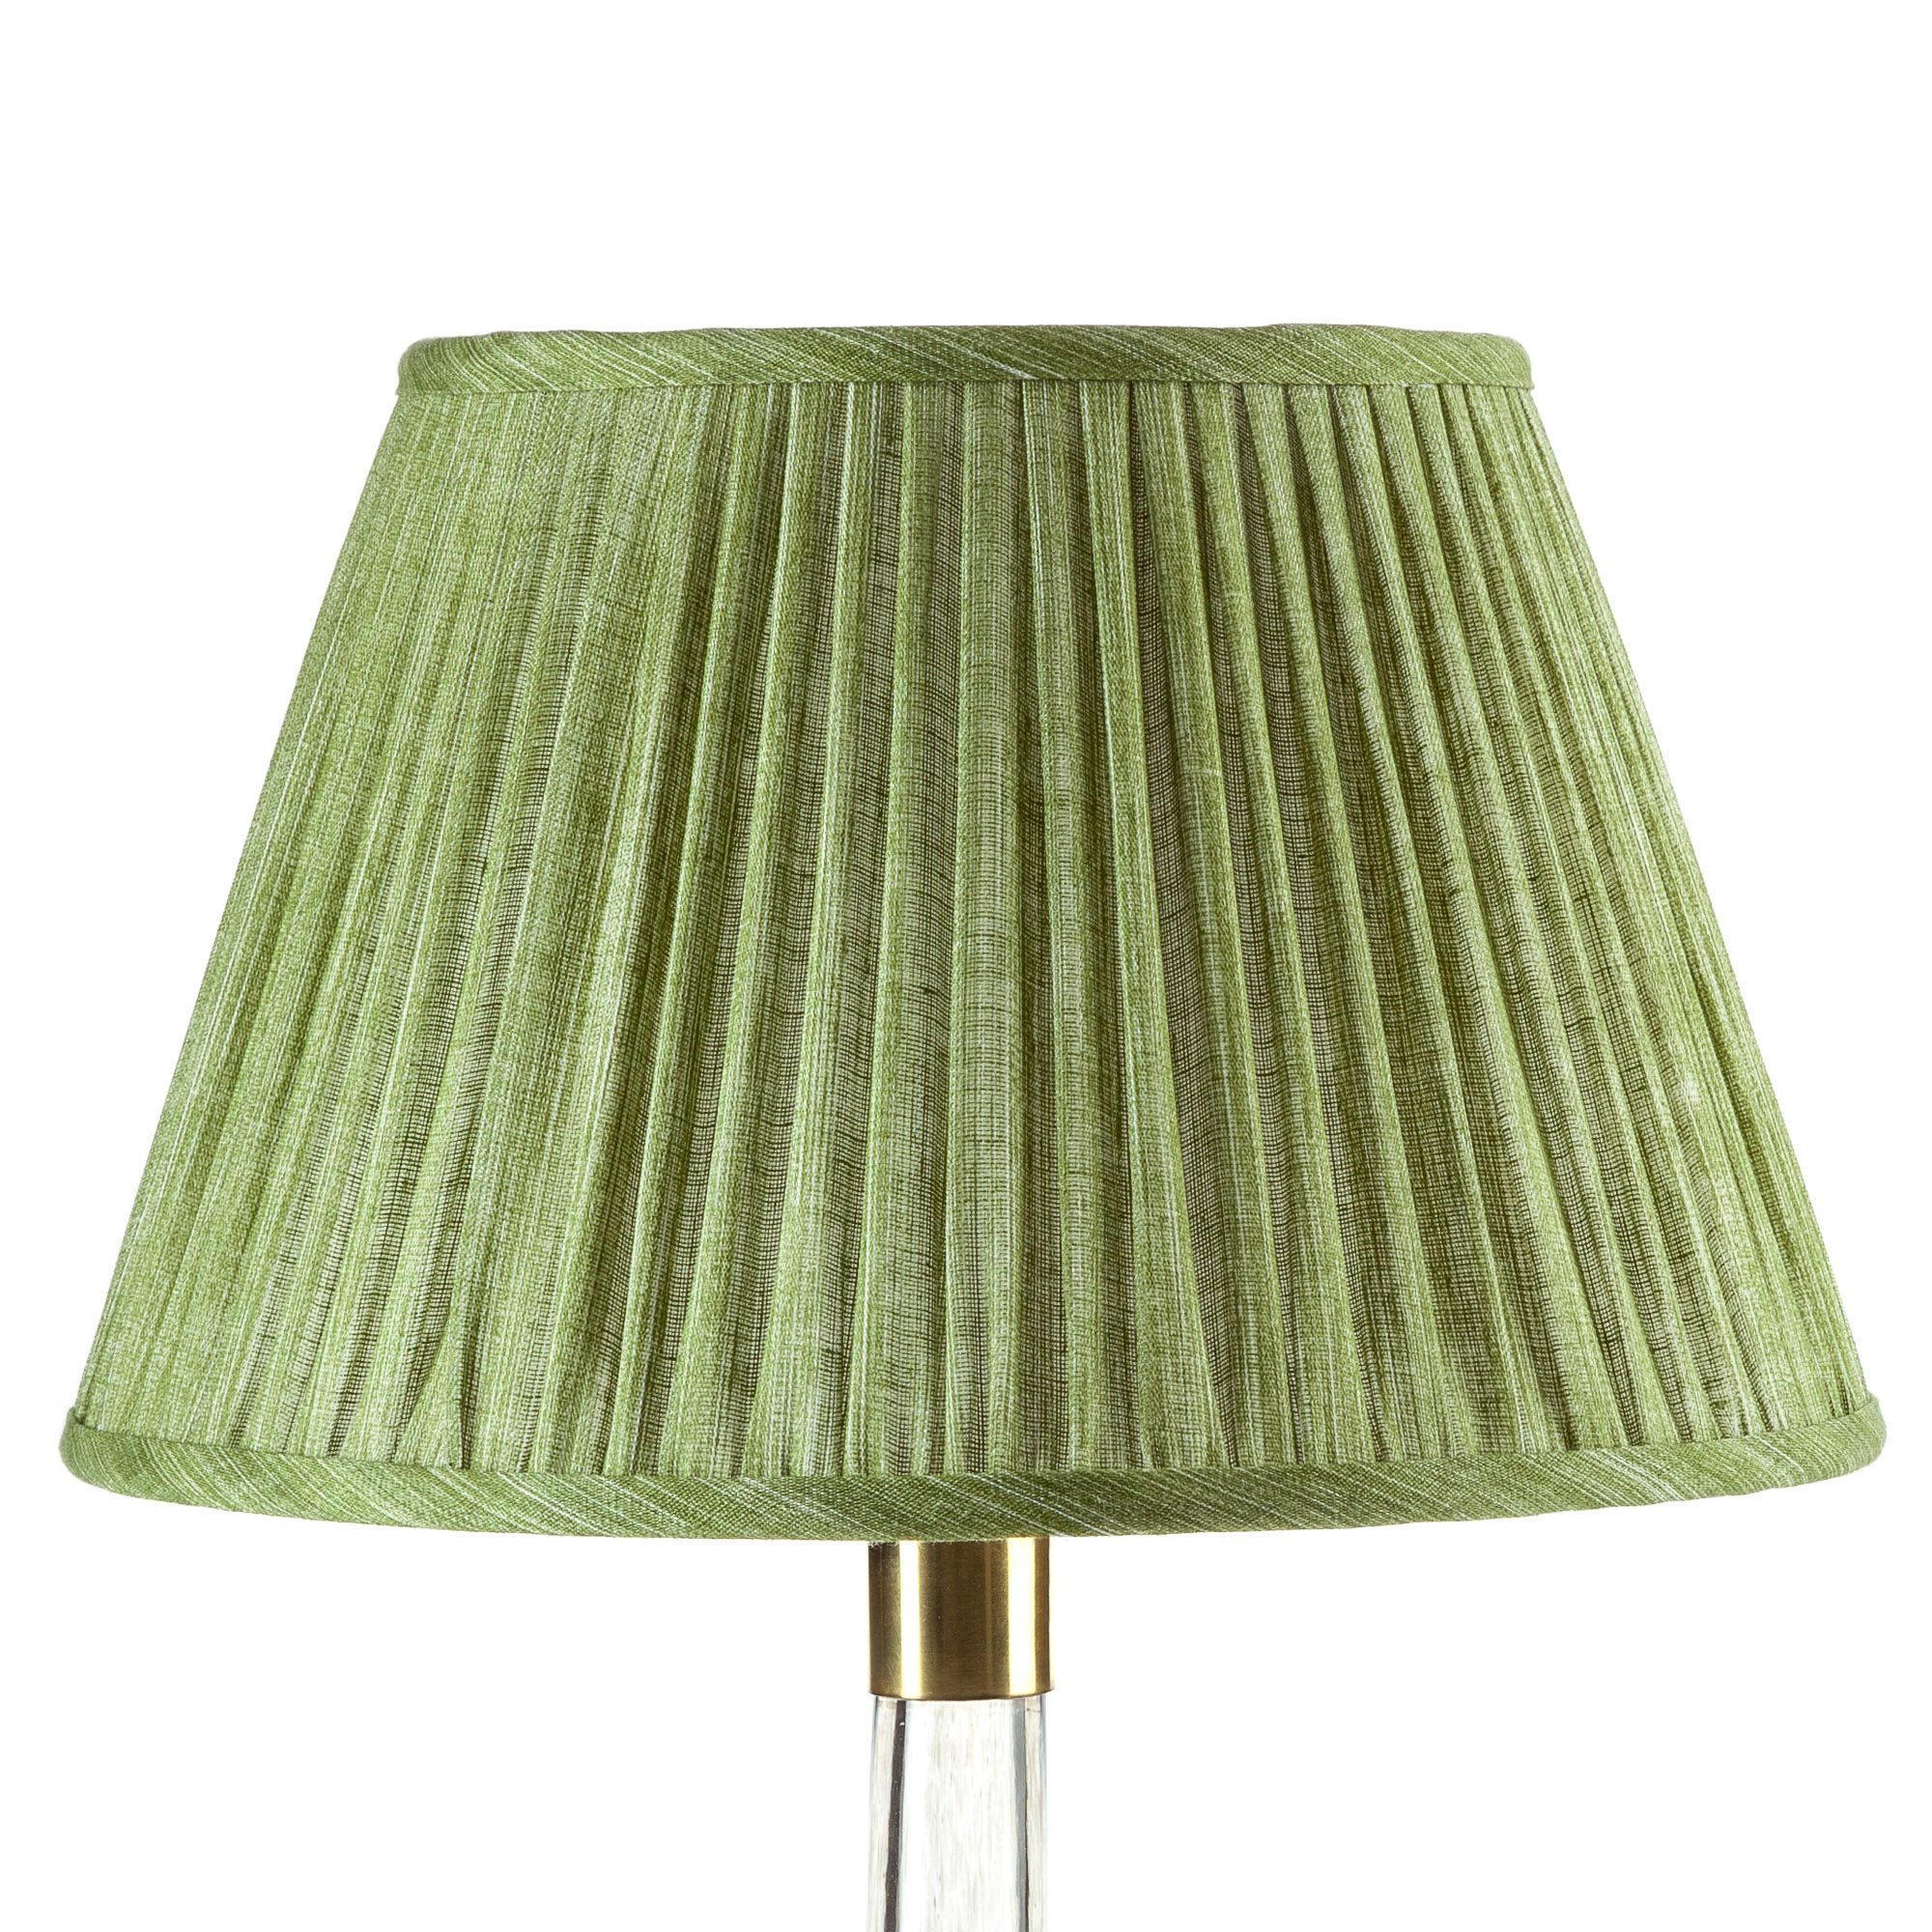 pg-040-empire-gathered-lampshade-in-kintyre-green-plain-040-1